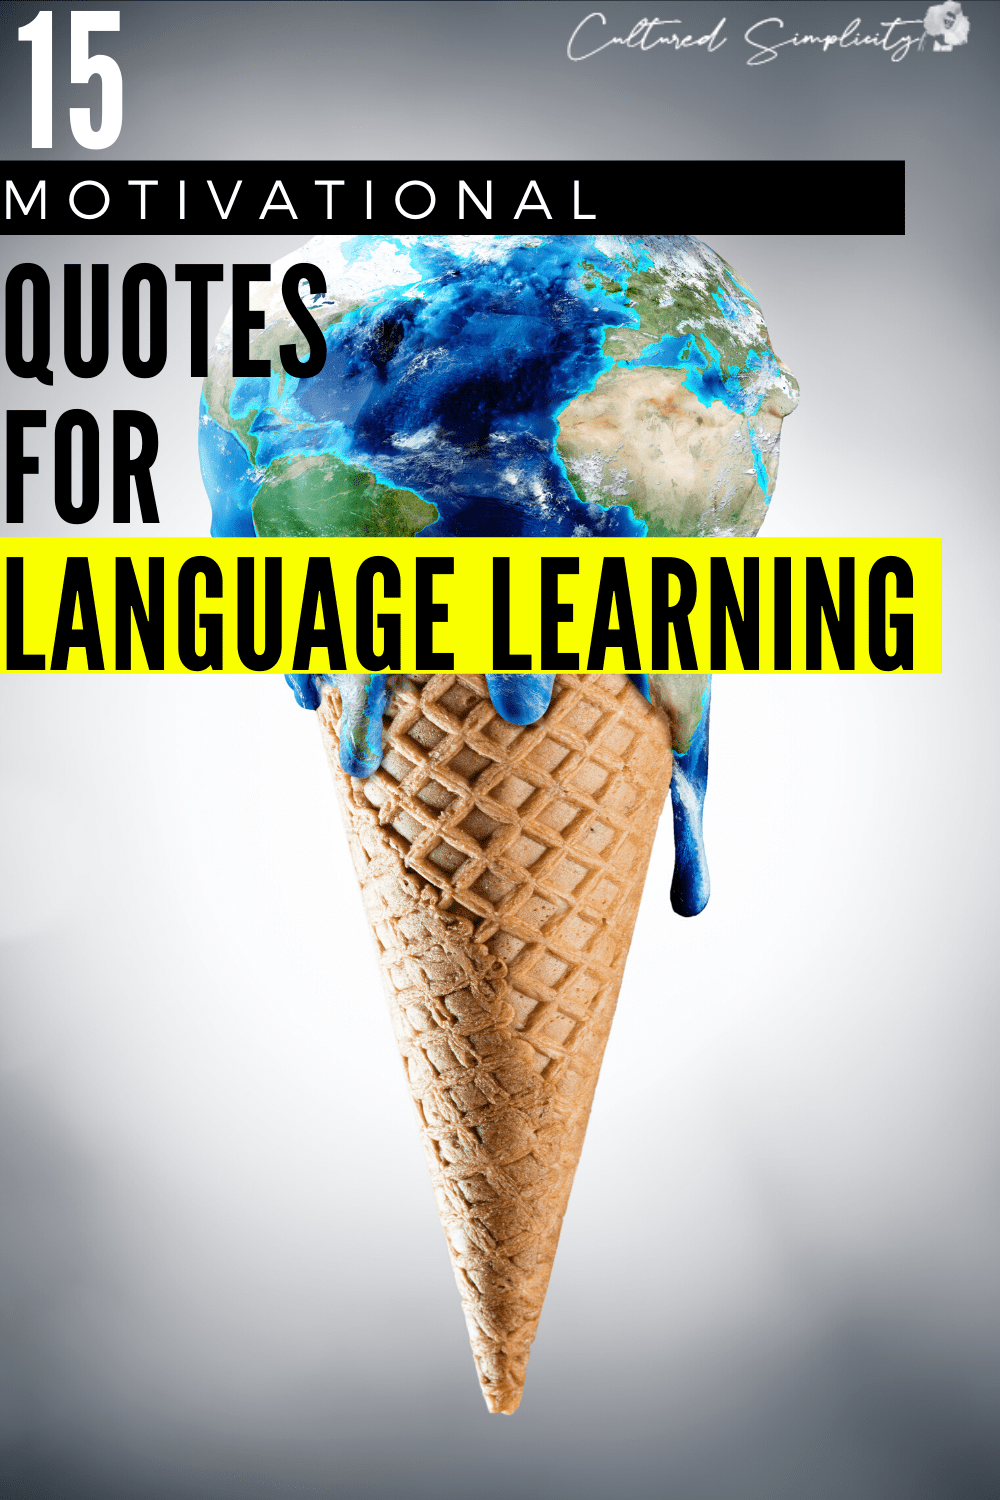 15 motivational quotes for learning a language